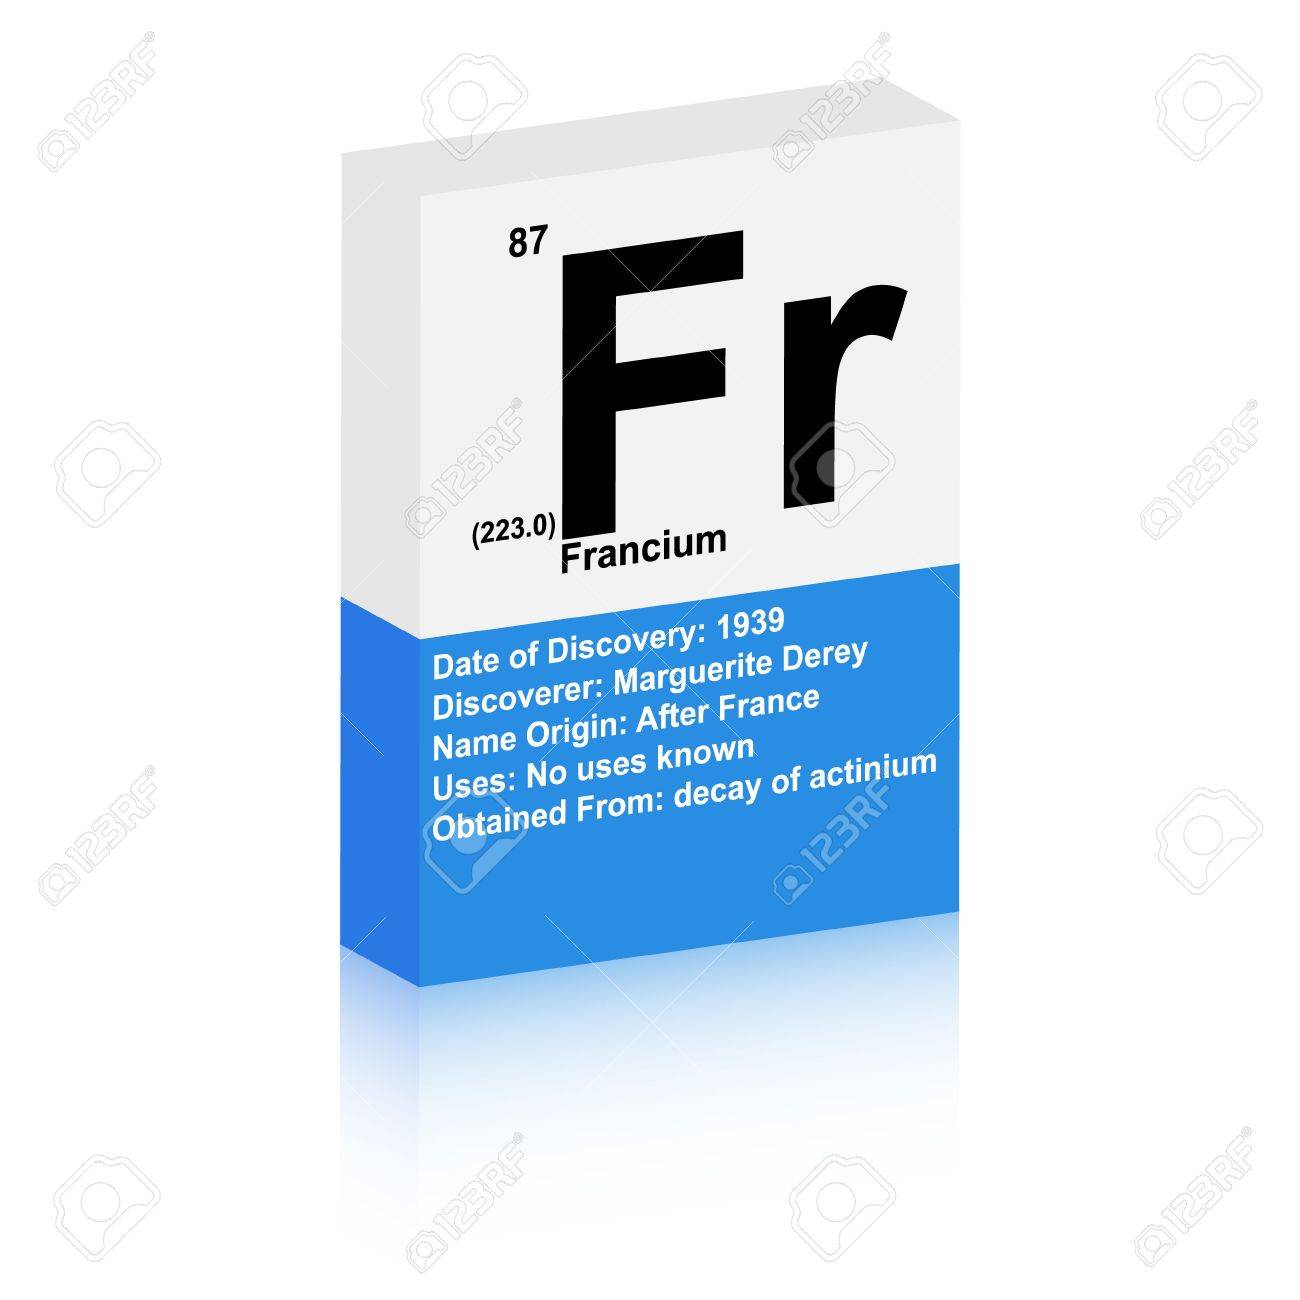 Piano terminology and symbols images symbol and sign ideas symbol for francium gallery symbol and sign ideas francium symbol royalty free cliparts vectors and stock buycottarizona